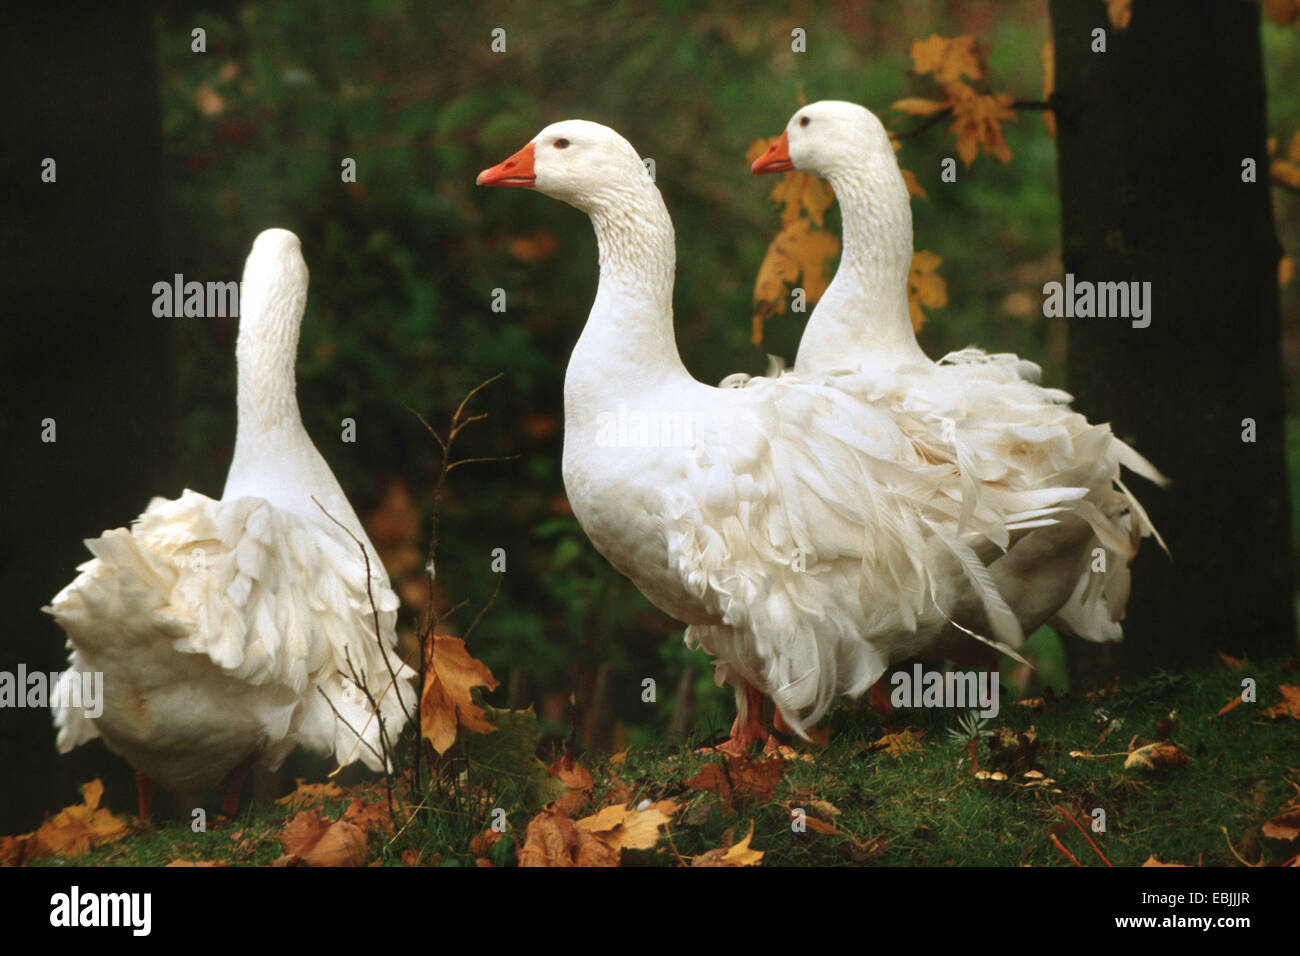 domestic goose (Anser anser f. domestica), some Sebastopol Geese on grasgrown forest ground - Stock Image